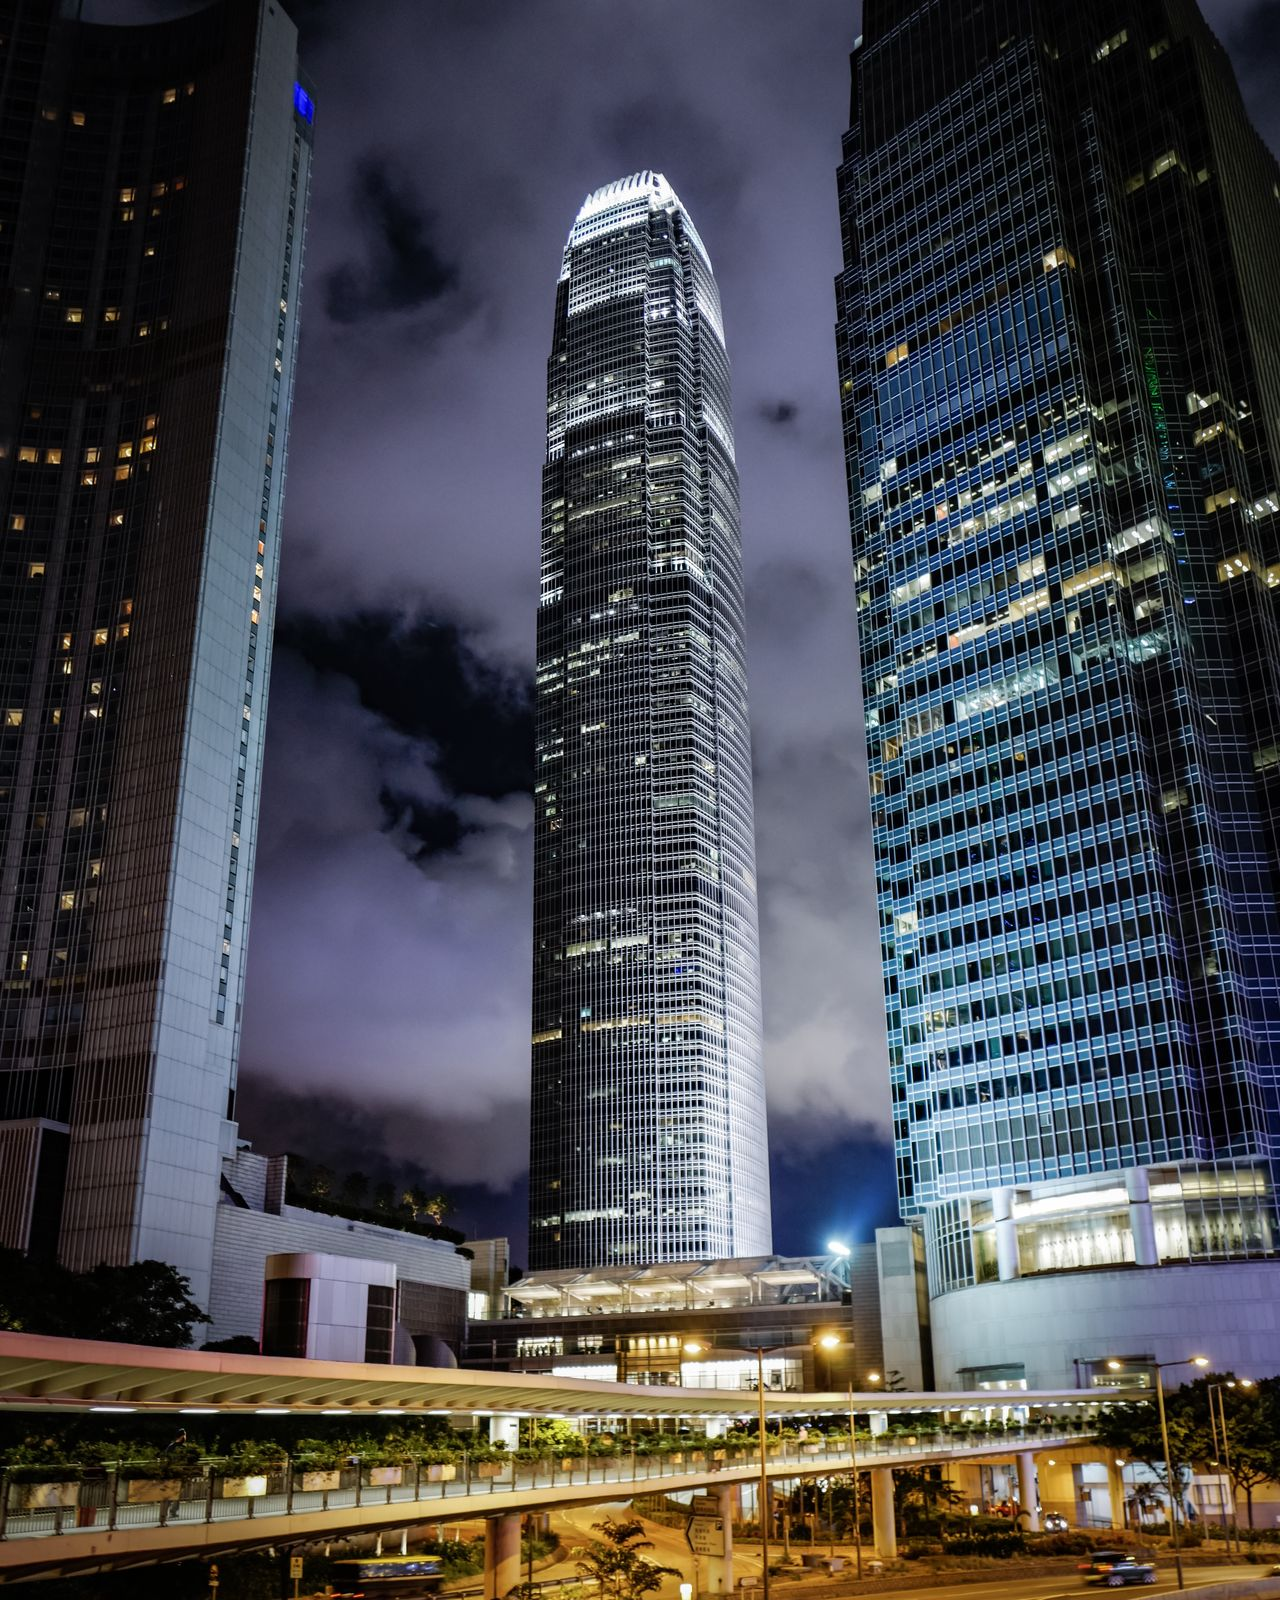 one night IFC Discoverhongkong Leicaq Nightscape IFC Financal District Urban Geometry Skyline Skyscraper Nightscapes Colour Of Life EyeEm Masterclass My Year My View Exploring Style Captured Moment EyeEm Best Shots Found On The Roll Taking Photos Walking Around Still Life Hello World Our Best Pics Life In Motion Capture The Moment Nightshooters Landscapes